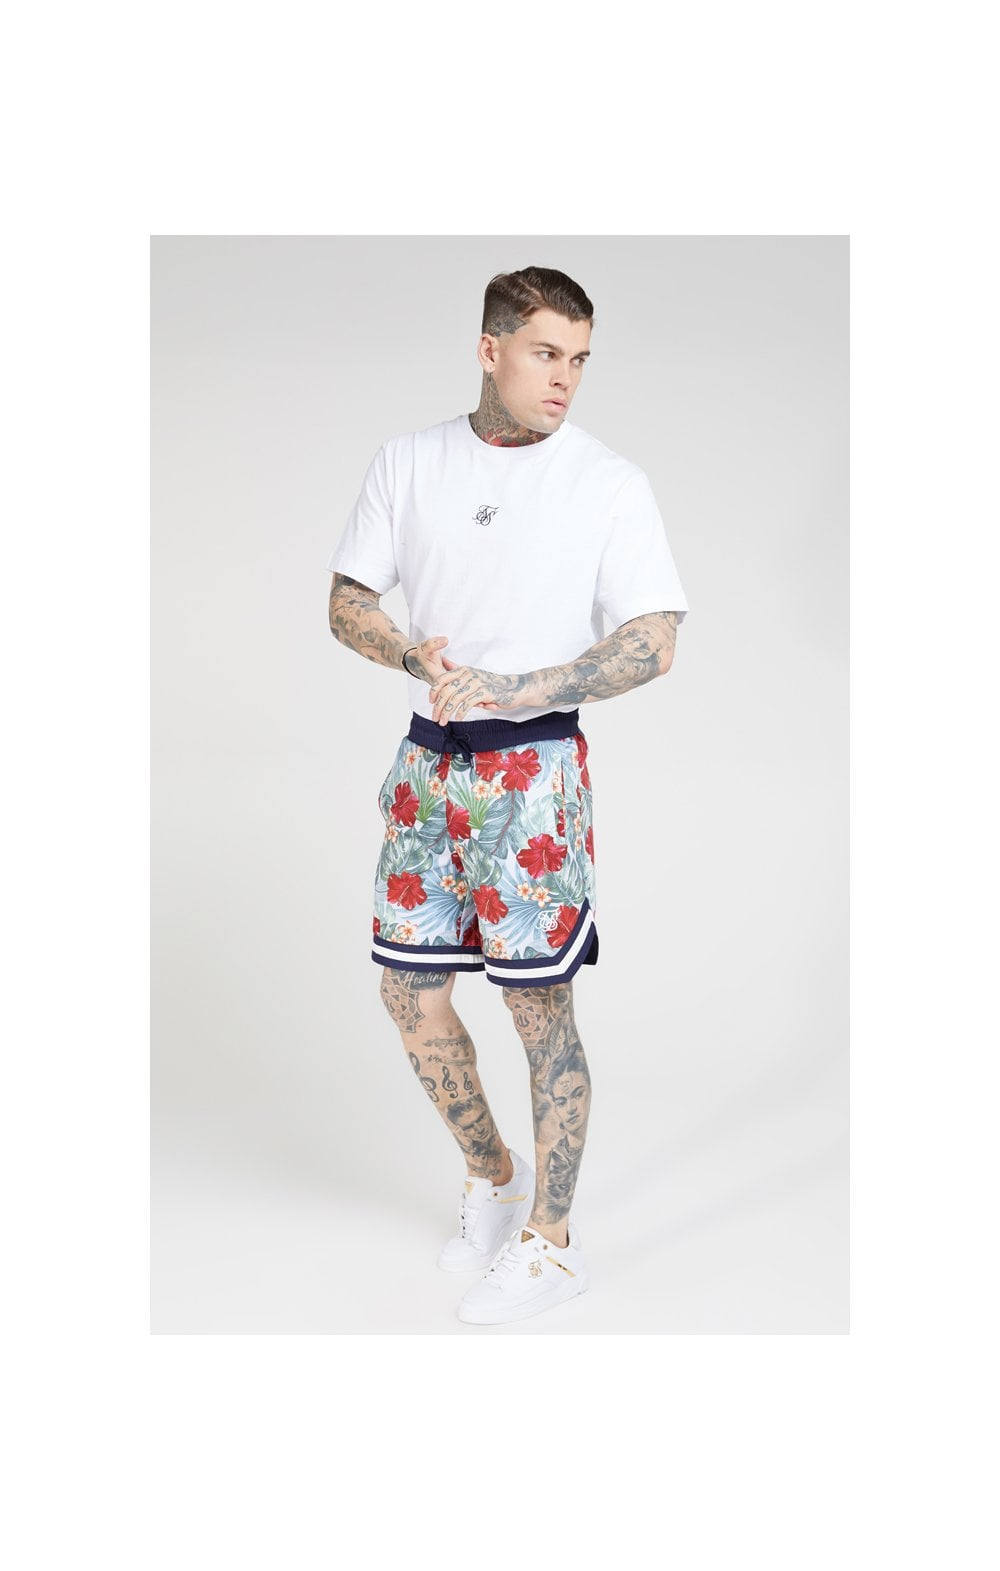 SikSilk 70's Floral Basketball Shorts - Navy & White (2)